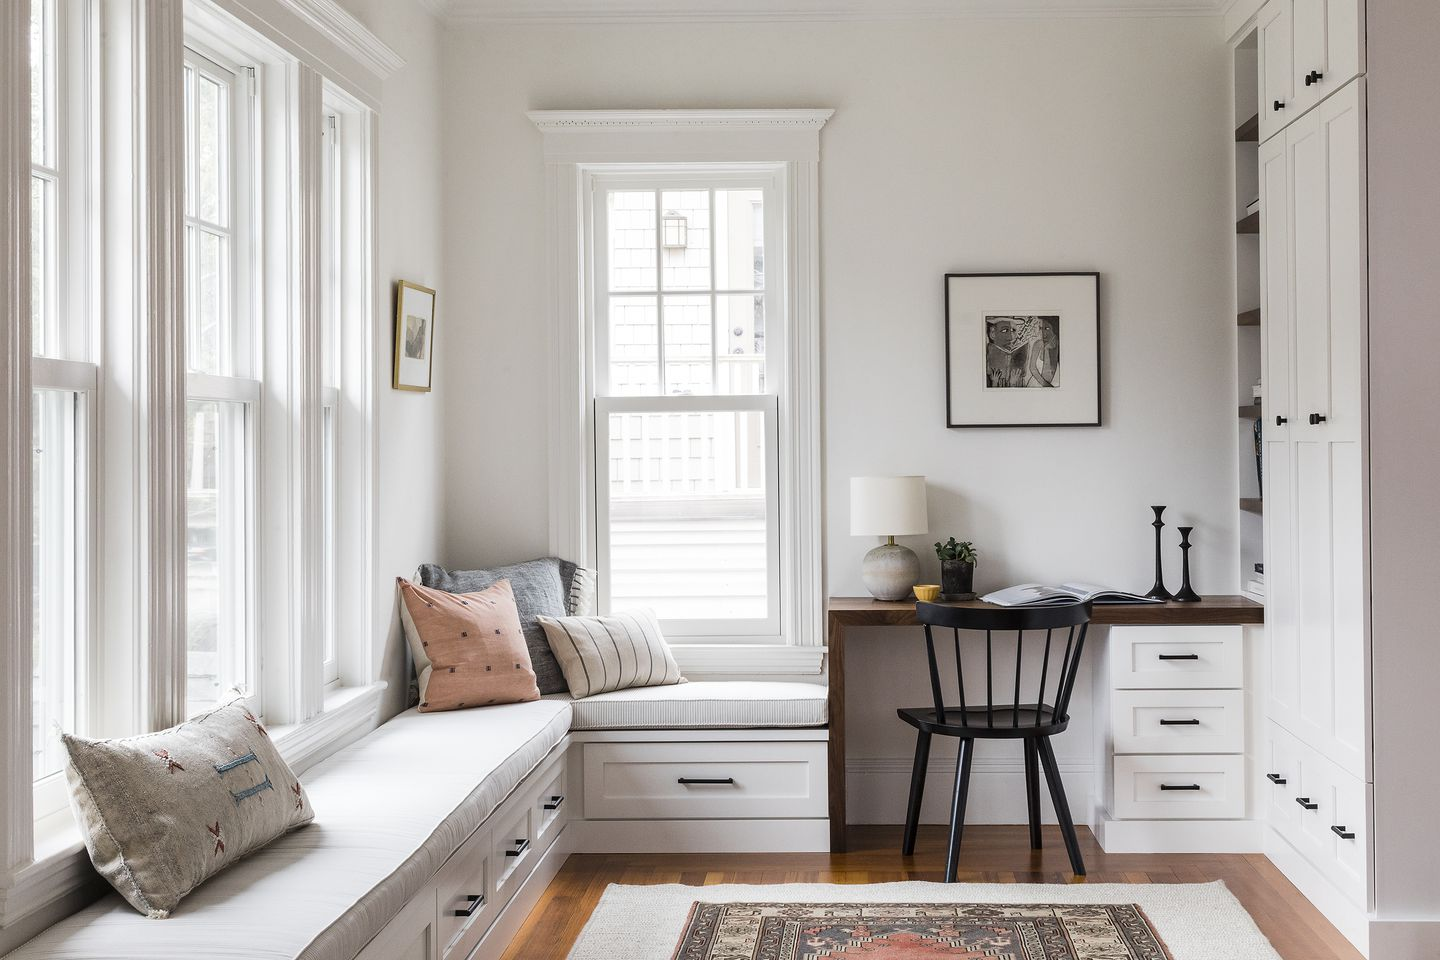 Home Design Ideas Making Room For A Study Space And Storage The Boston Globe